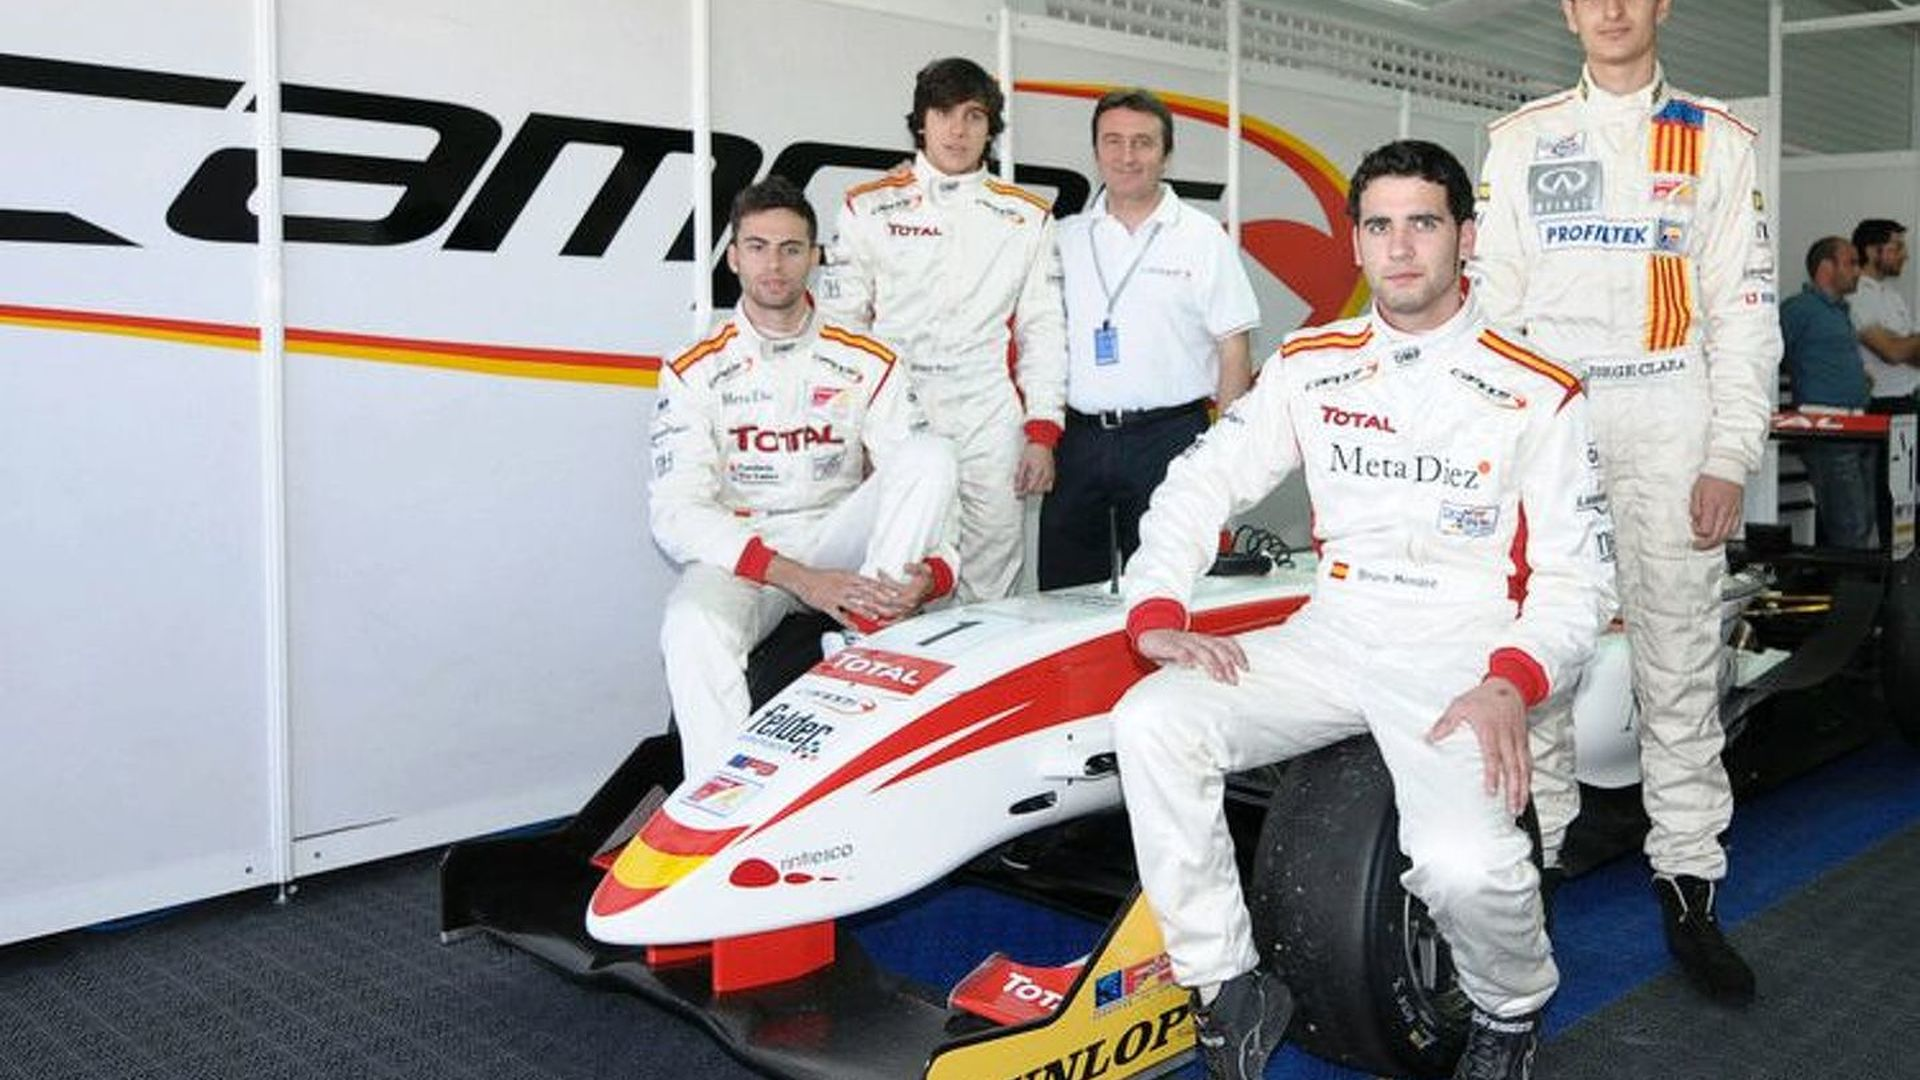 USF1, Campos, say they will race in 2010